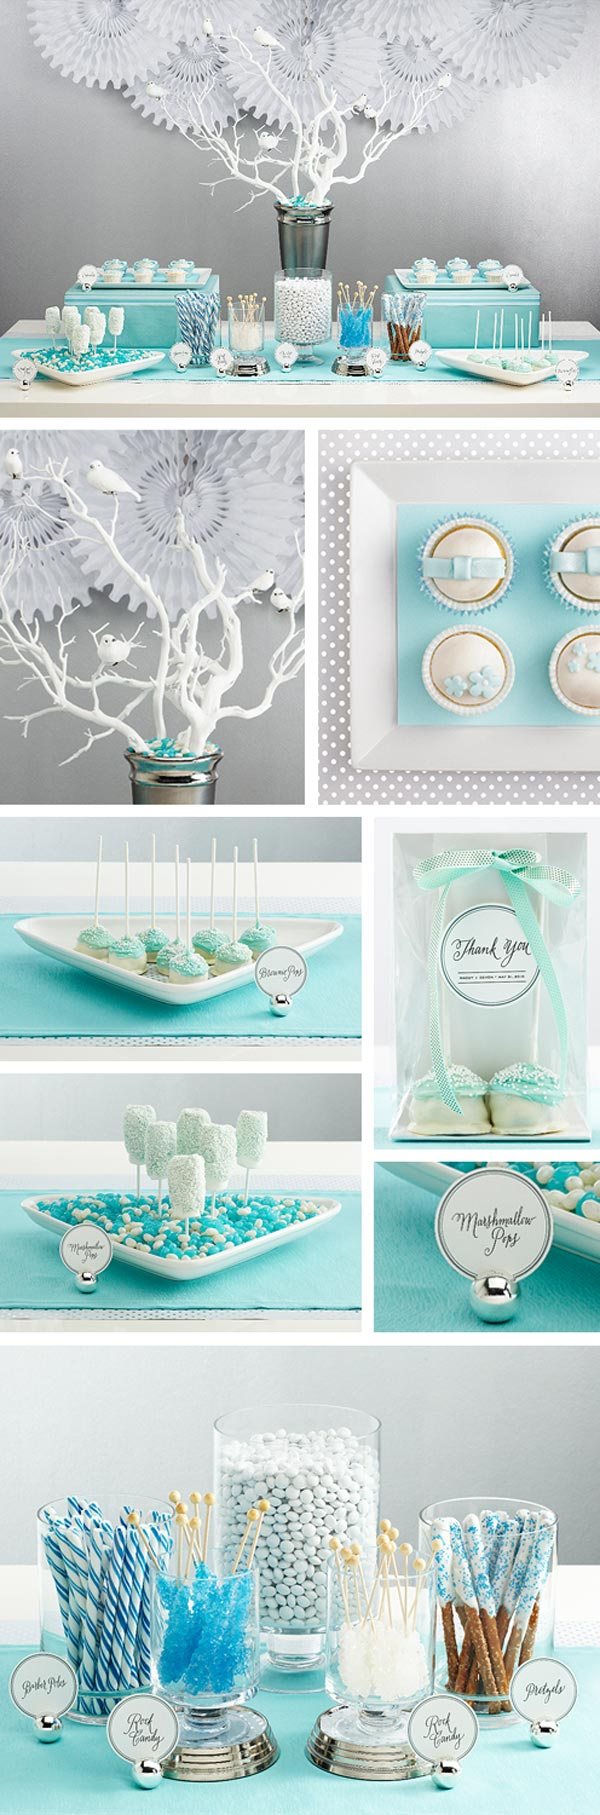 baby shower decor ideas boy girl 2